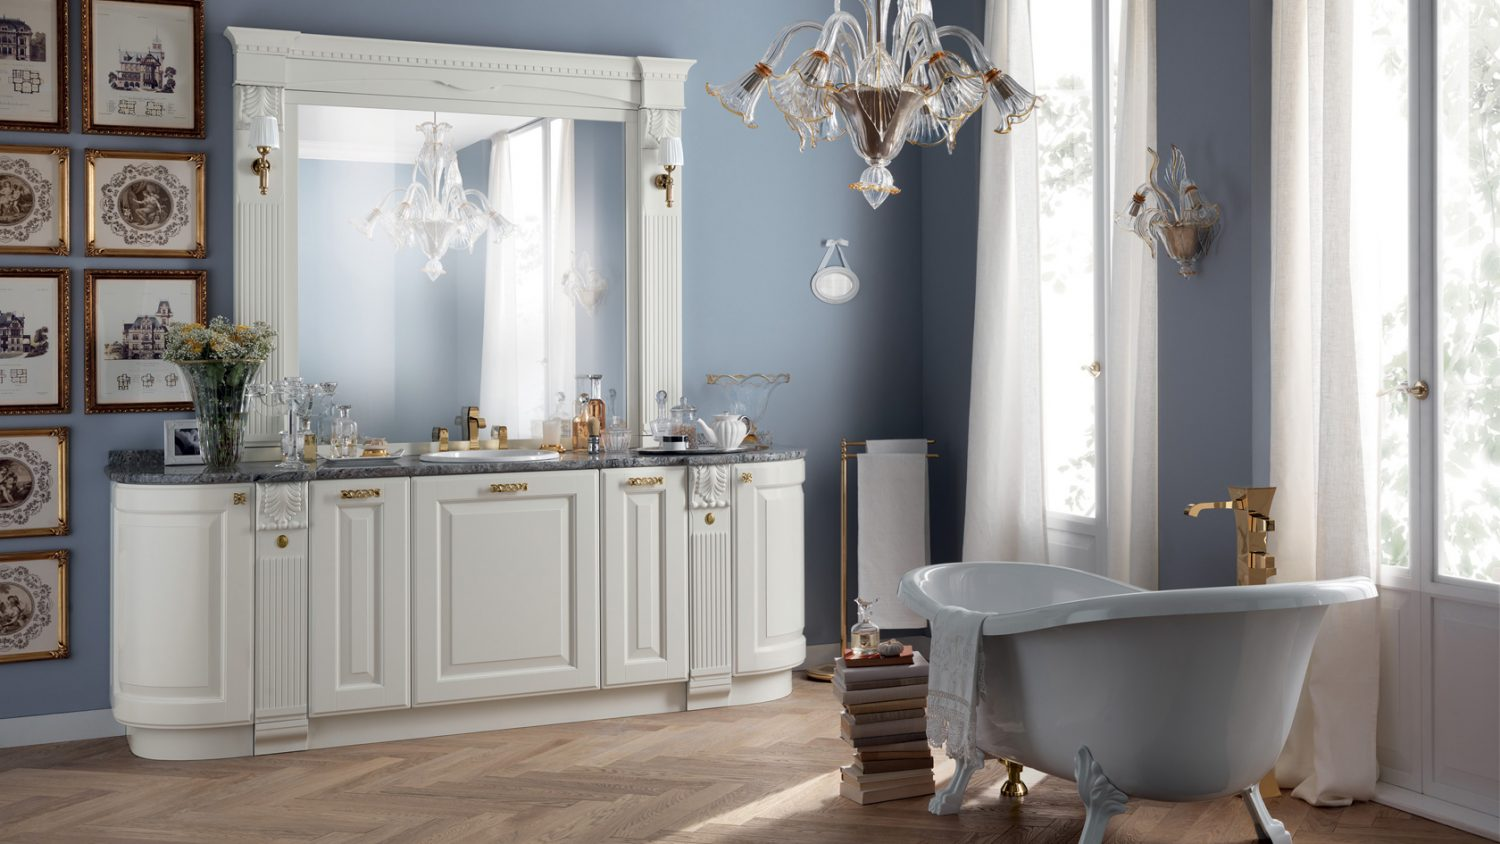 baltimora collection of mosbuild best bathroom exhibitors mosbuild best bathroom exhibitors MOSBUILD 2019 BEST BATHROOM EXHIBITORS 5424 bagno Baltimora 03